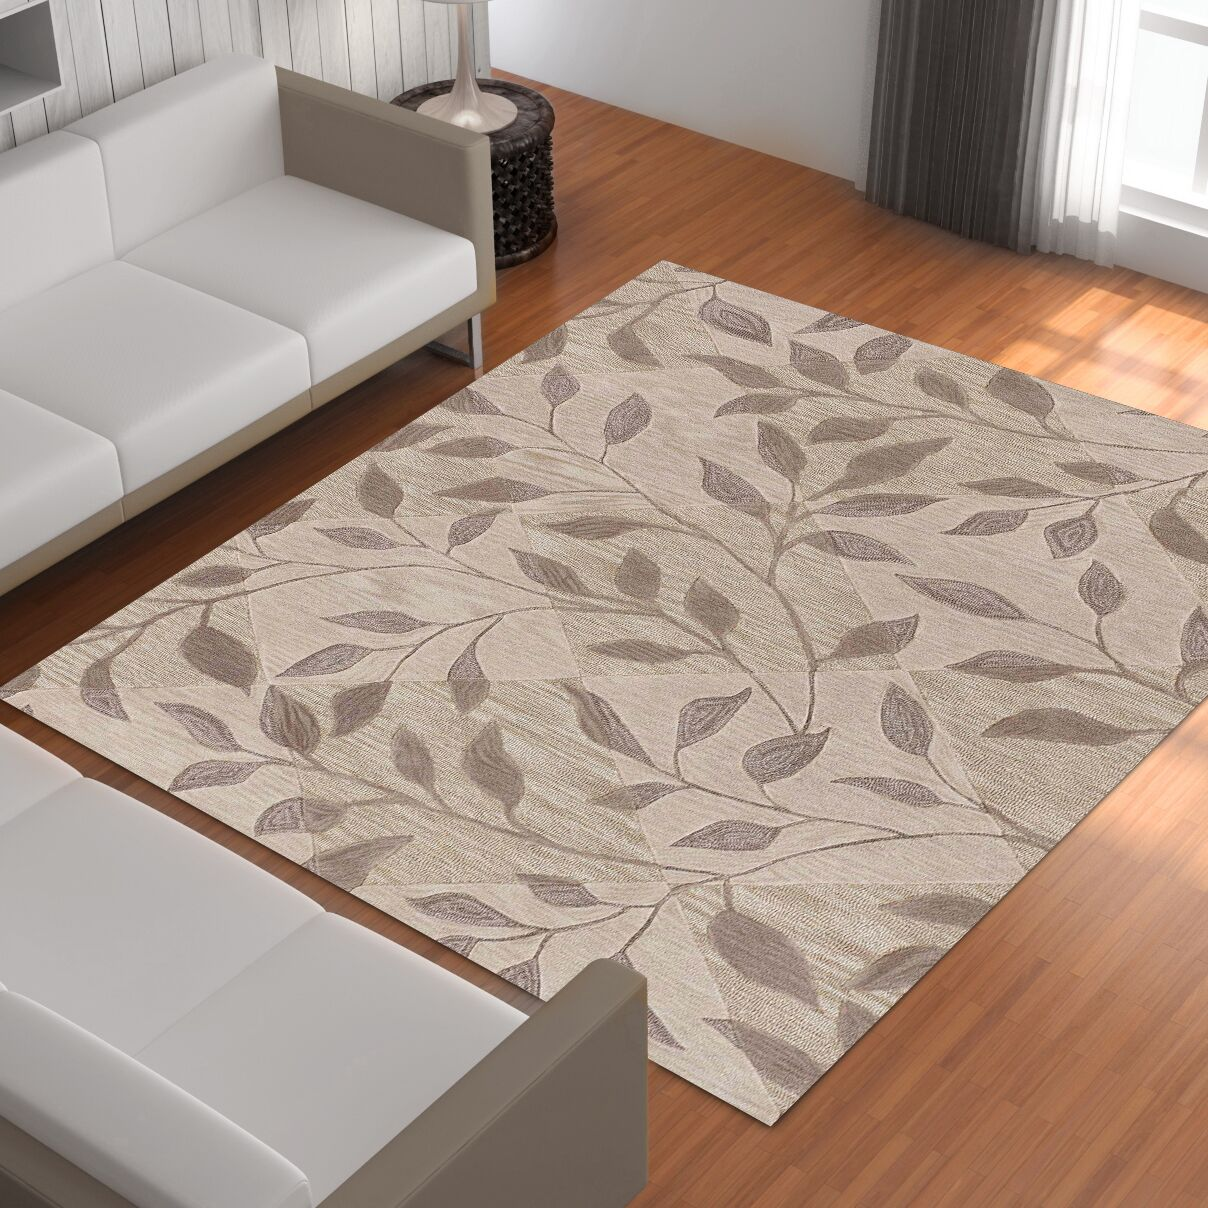 Bryant Hand-Tufted Ivory Area Rug Rug Size: Rectangle 5' x 7'9